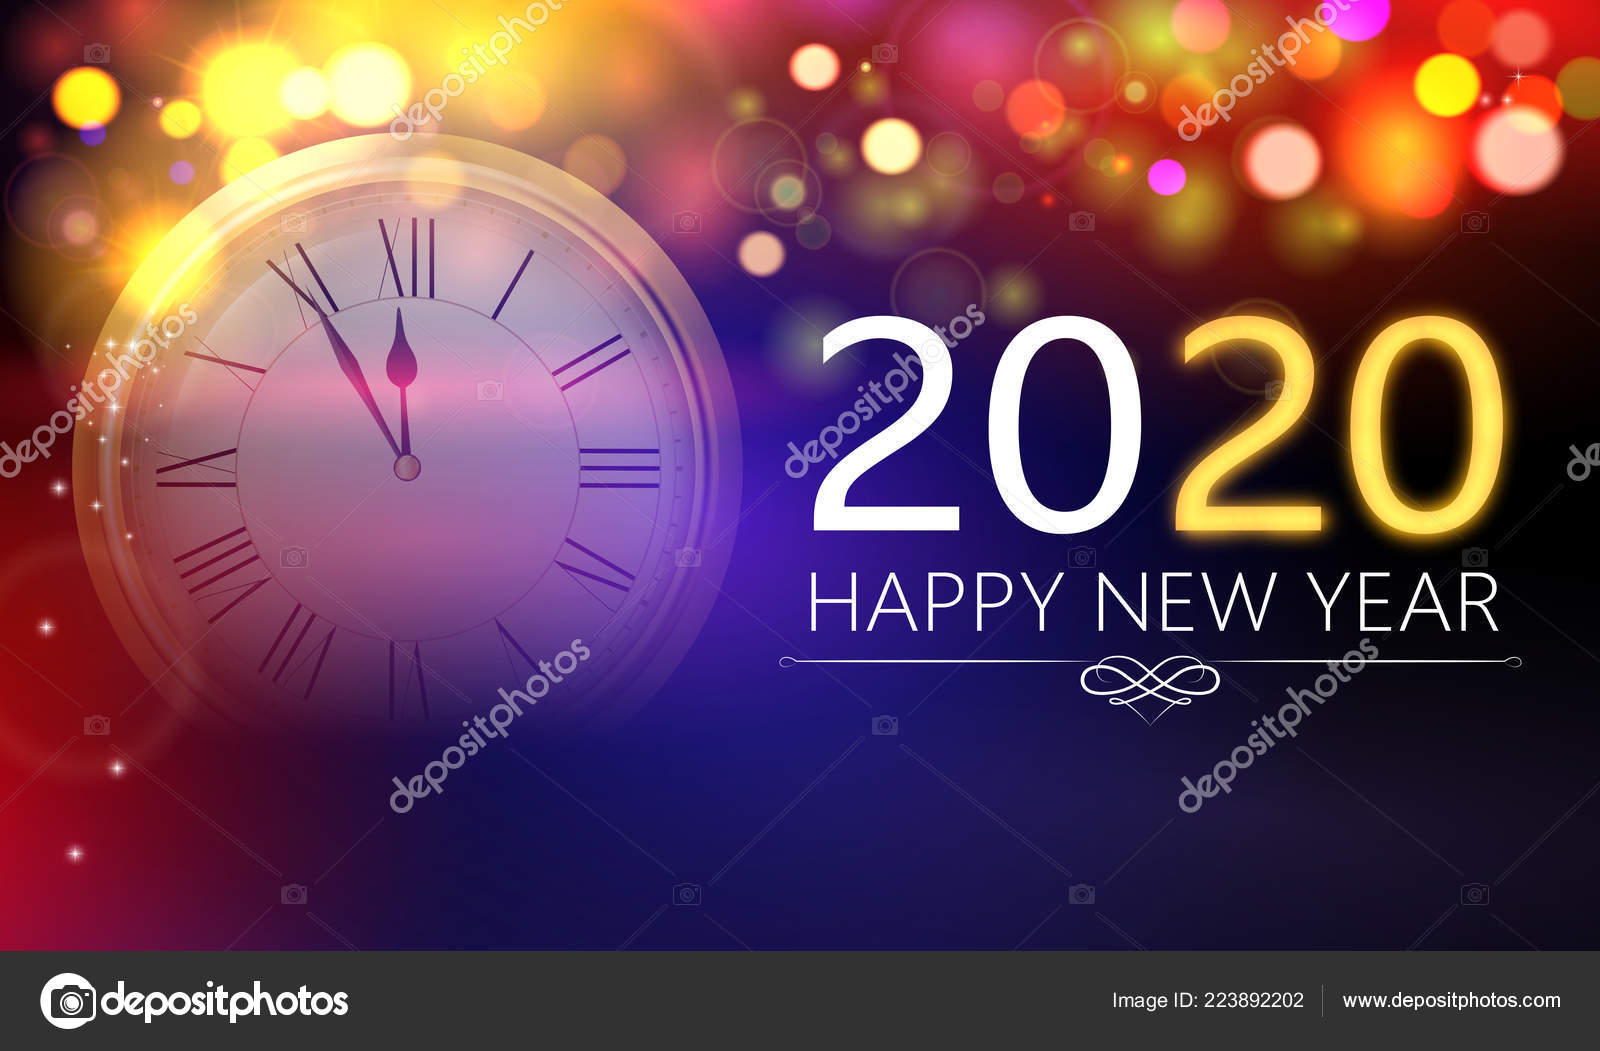 Merry christmas and happy new year 2020 banner Vector ...